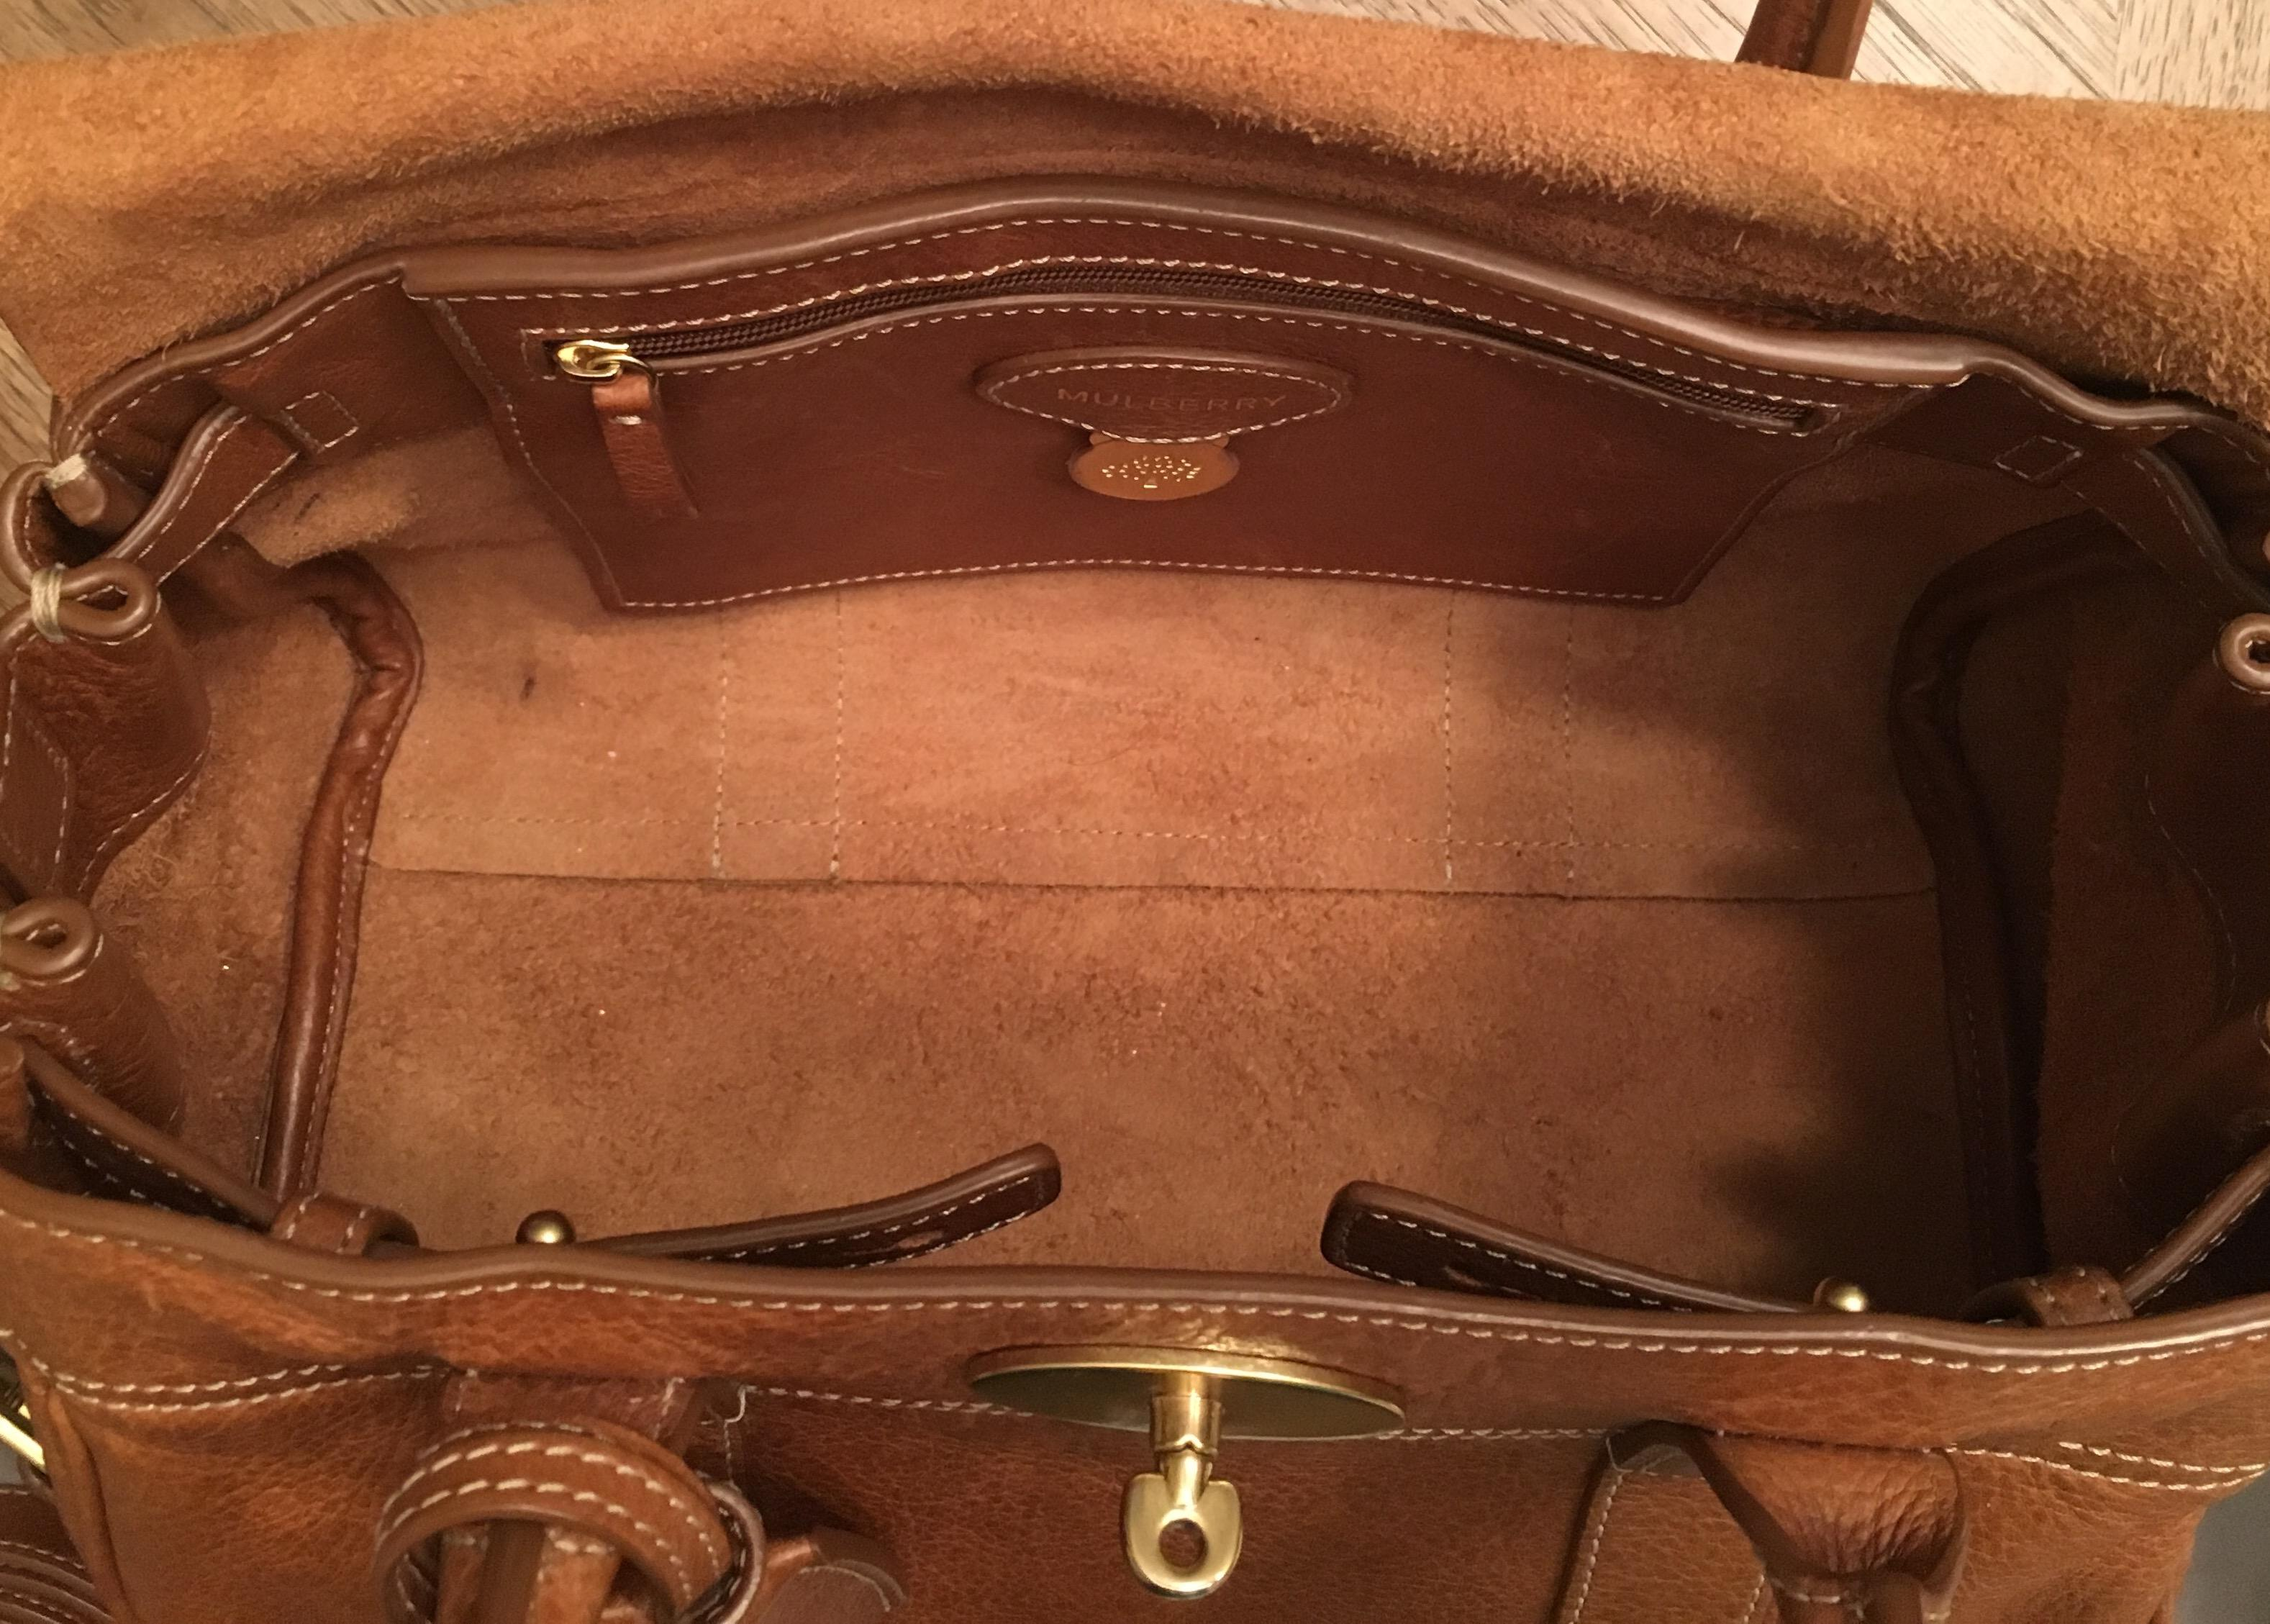 clearance mulberry small bayswater oak leather satchel tradesy 254d4 d7bb4 12103a272eaf4